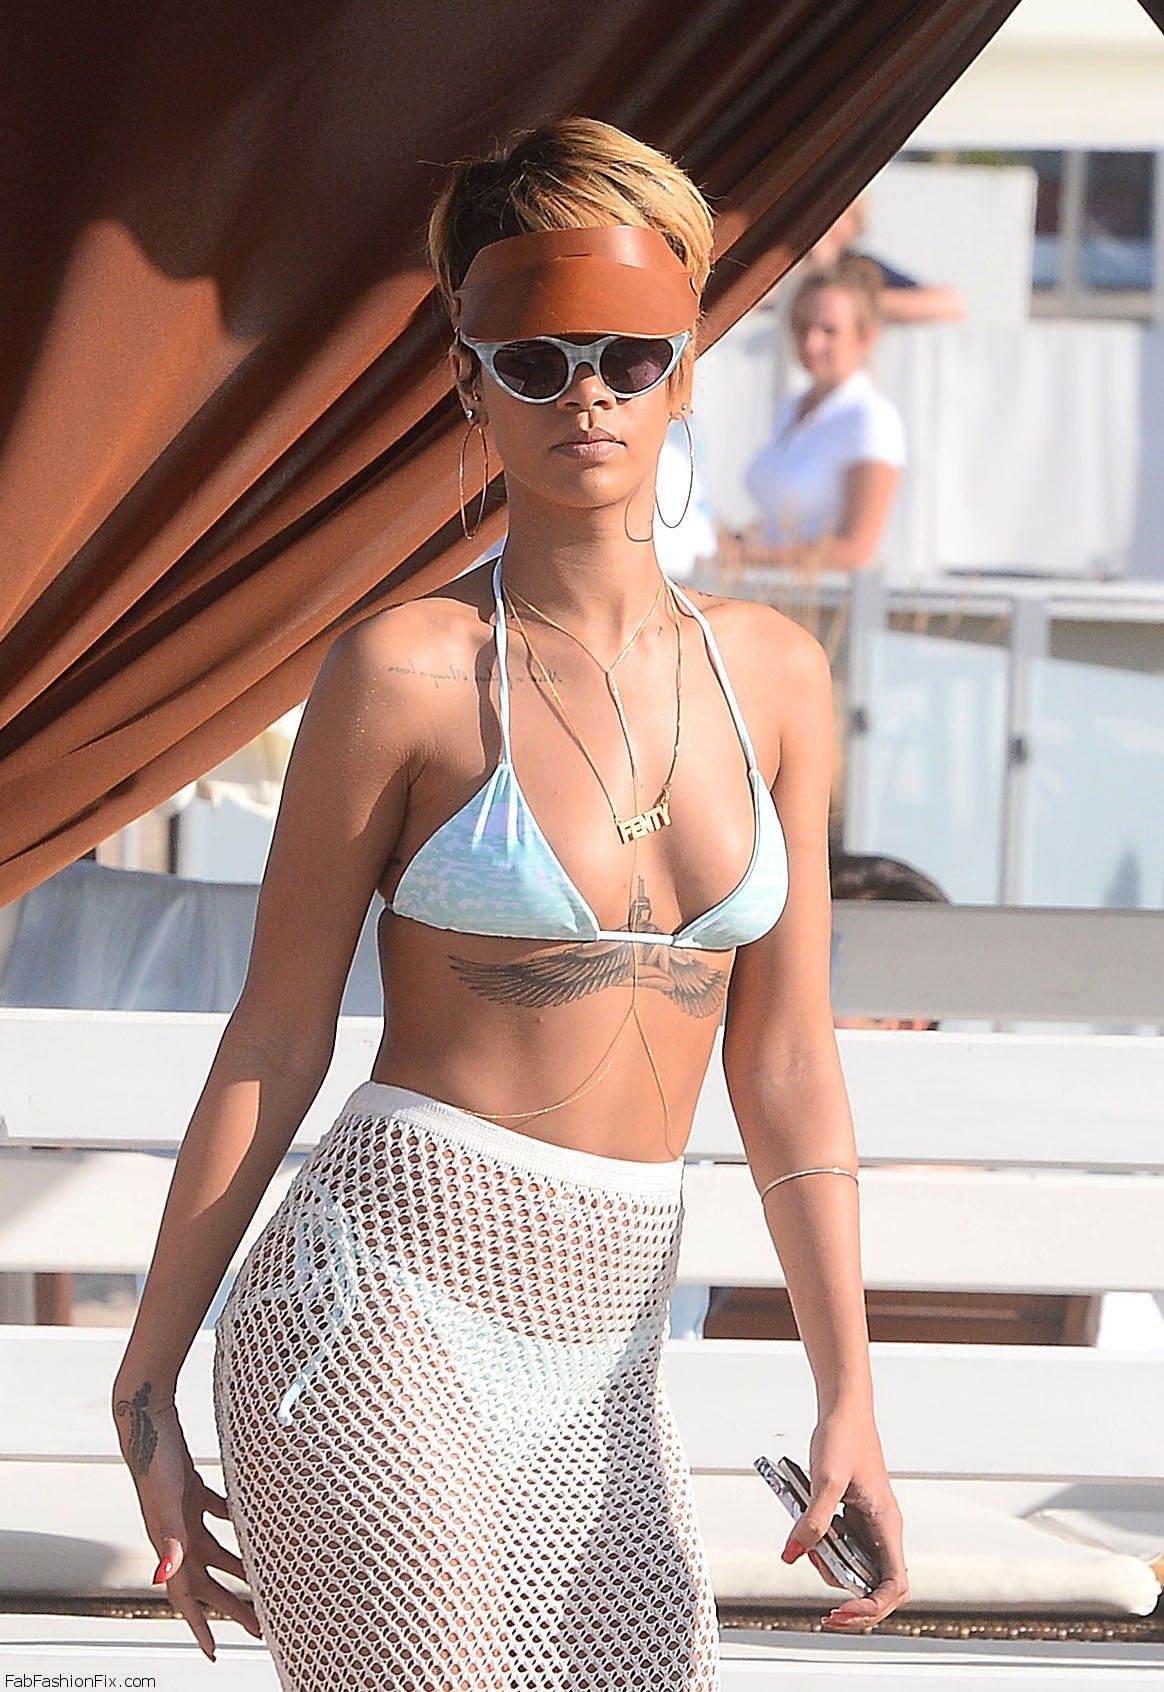 celebrity-paradise.com-The Elder-rihanna _22_